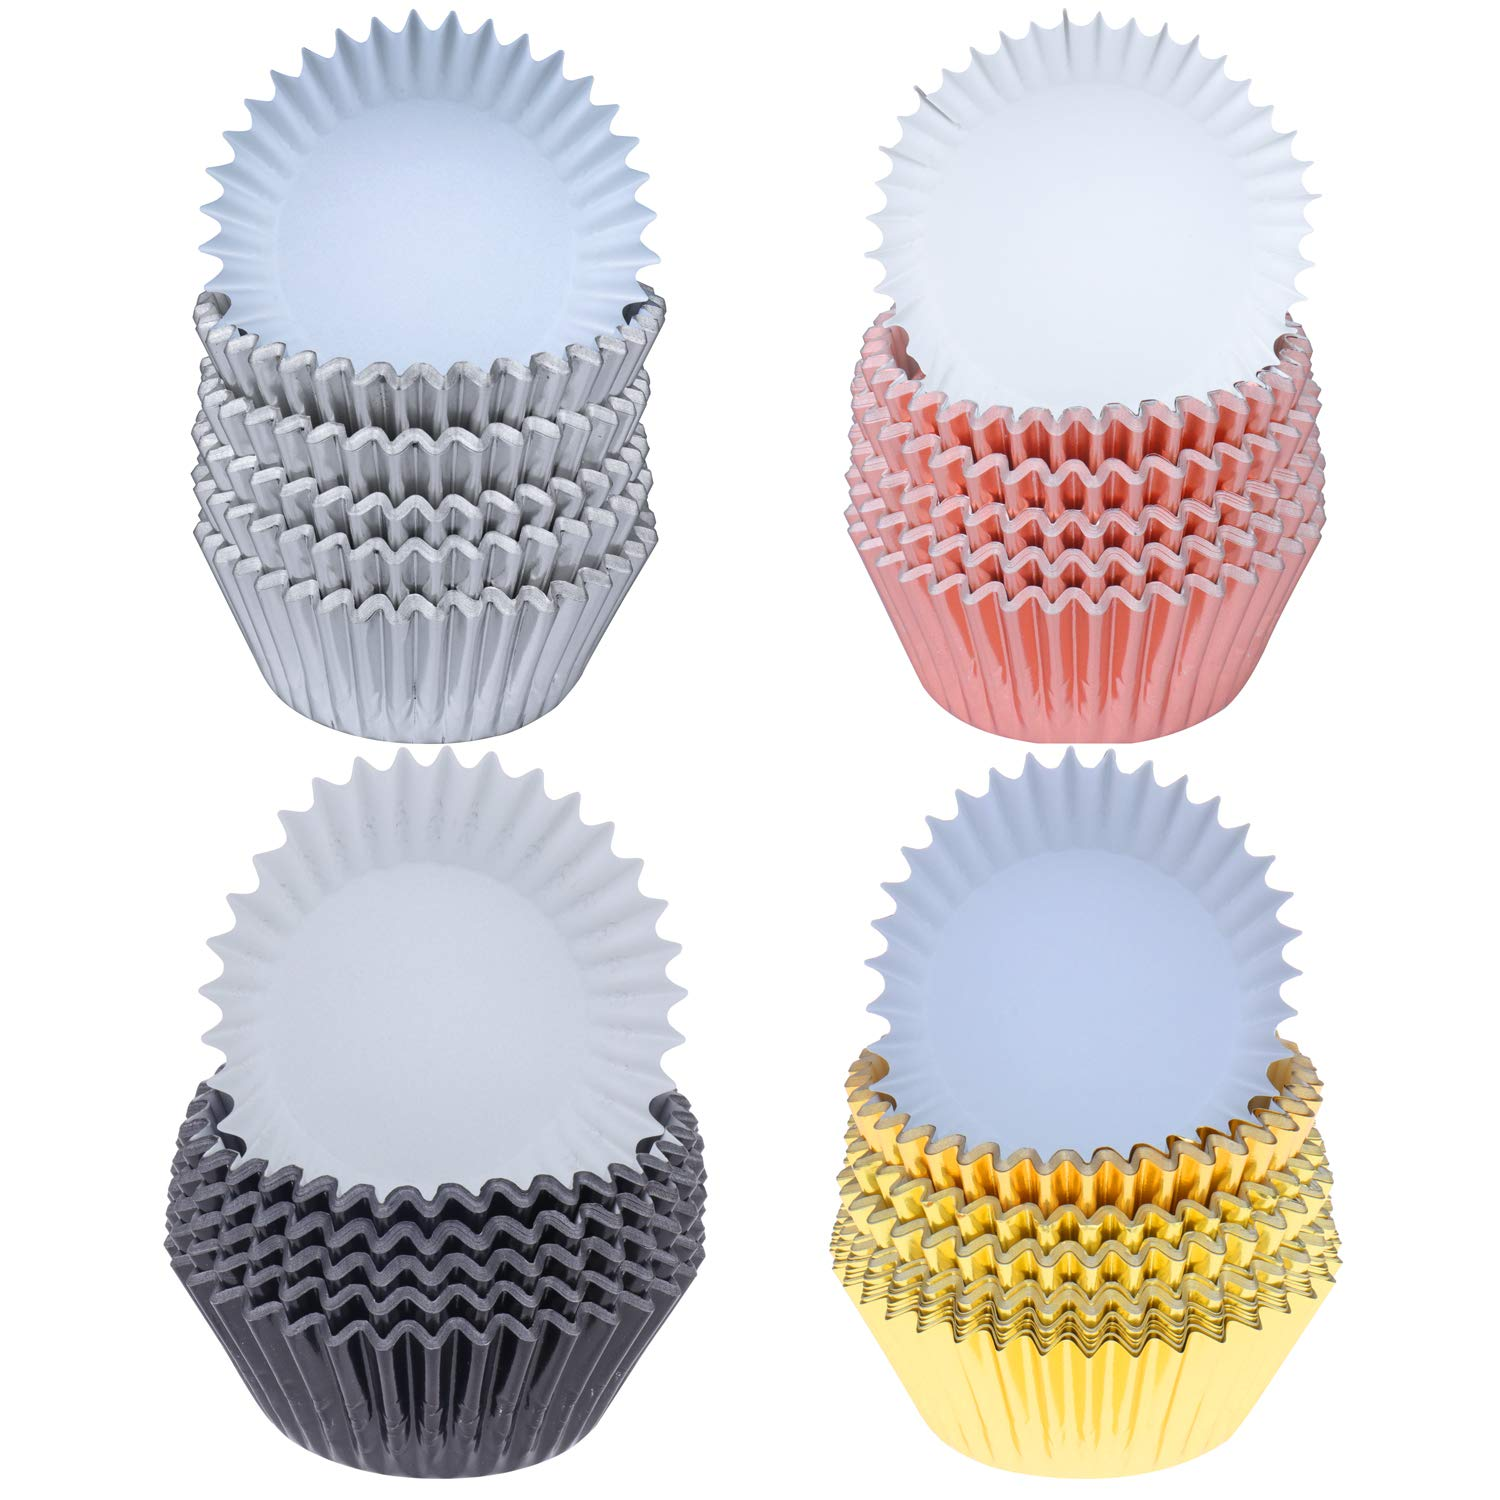 SUBANG 400 Pieces Tulip Cupcake Liner Baking Cups Muffin Tins Treat Cups Foil Metallic Cupcake Liners for Weddings,Birthdays,Baby Showers,Silver Rose Gold Black and Gold